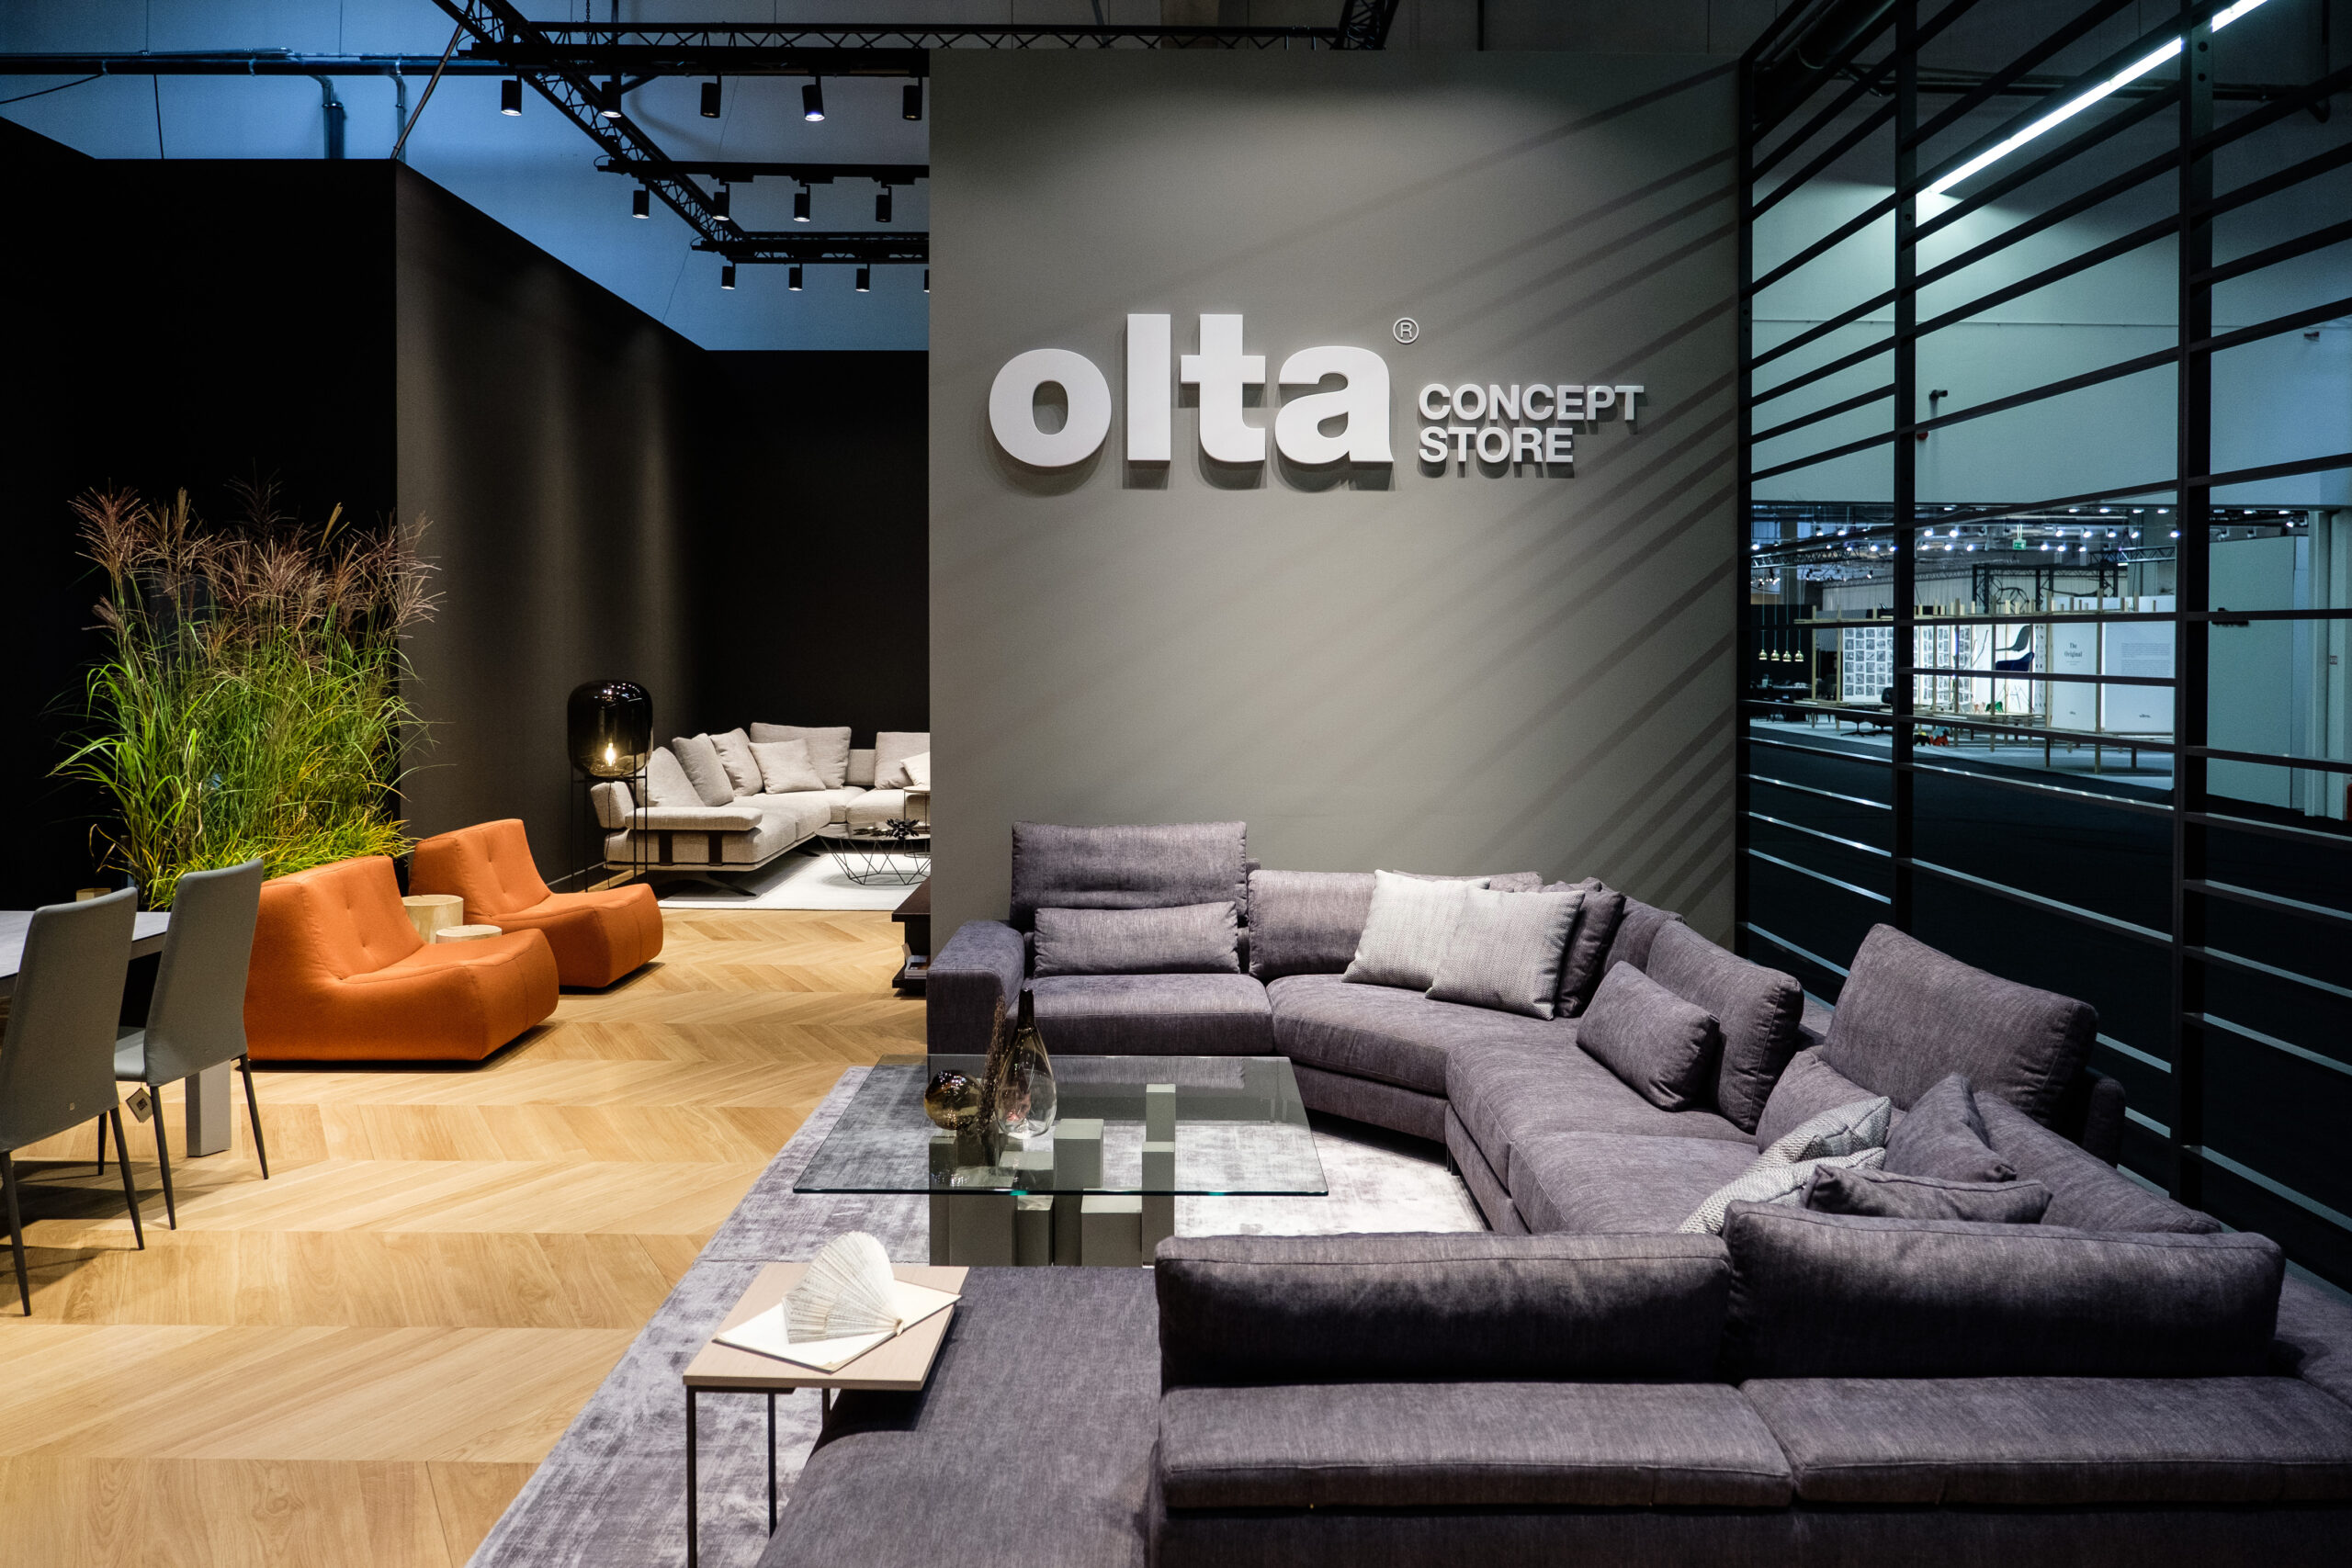 olta concept store @ Warsaw Home 2018